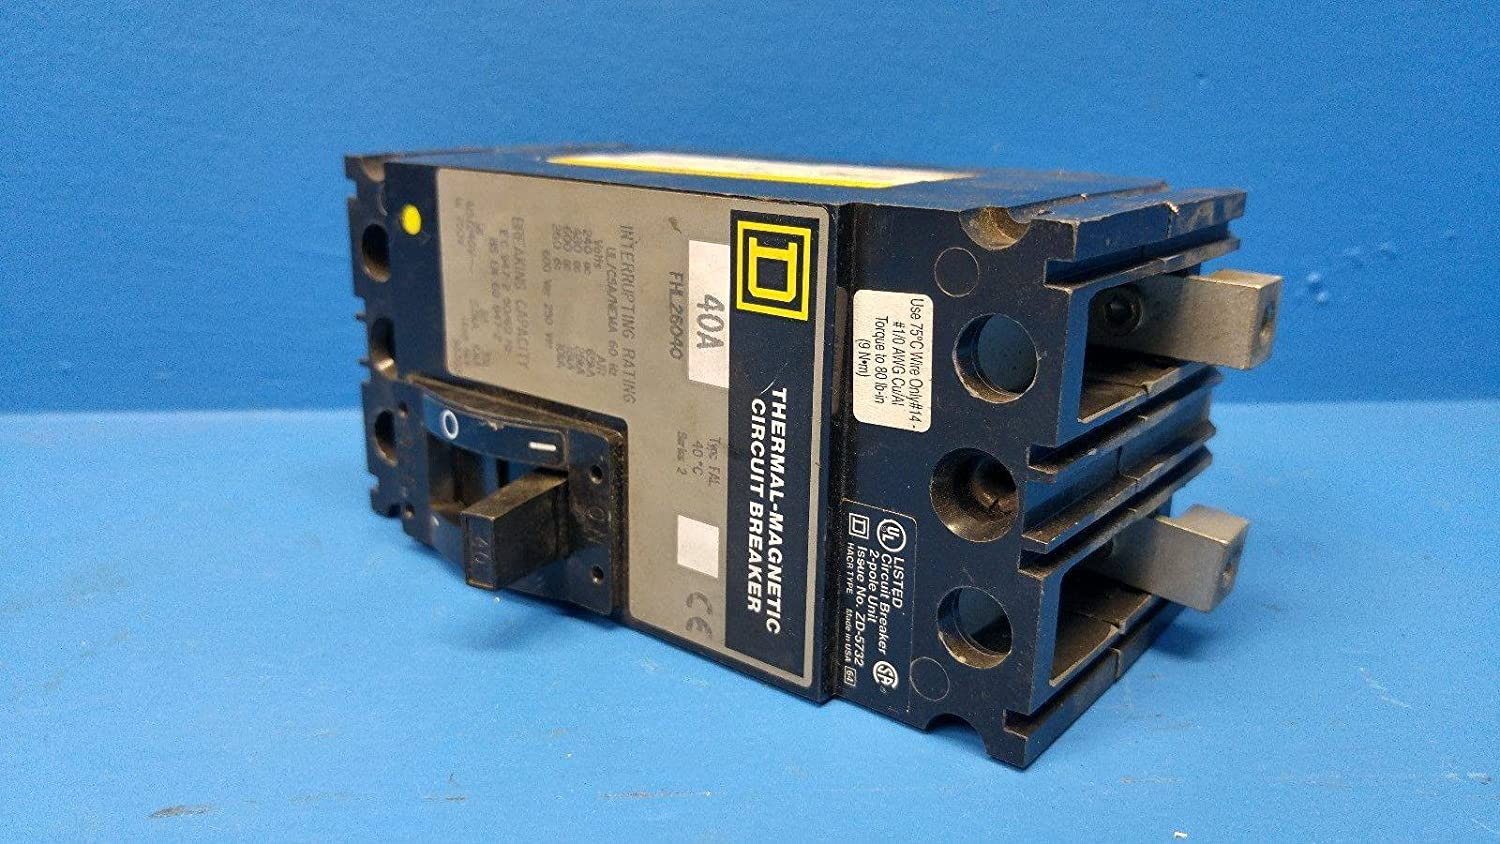 Square D Fhl26040 40a Thermal Magnetic Circuit Breaker Fhl 26040 Fal Breakers Some Use A S2 40 Amp Industrial Scientific